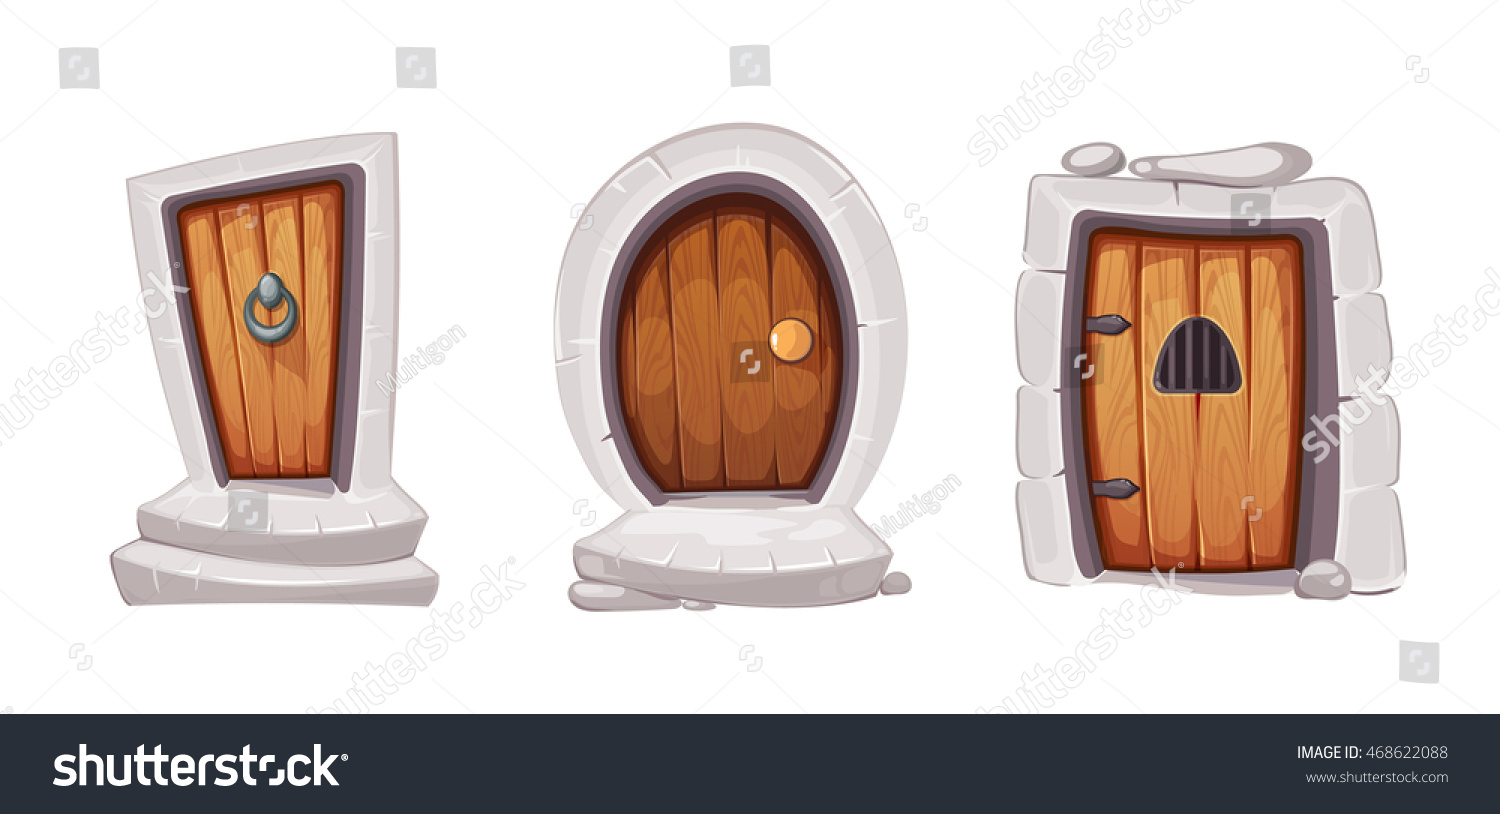 vector Illustration set of cartoon medieval doors and gate from wood. Pictures for 2D Ui  sc 1 st  Shutterstock & Vector Illustration Set Cartoon Medieval Doors Stock Vector ... pezcame.com